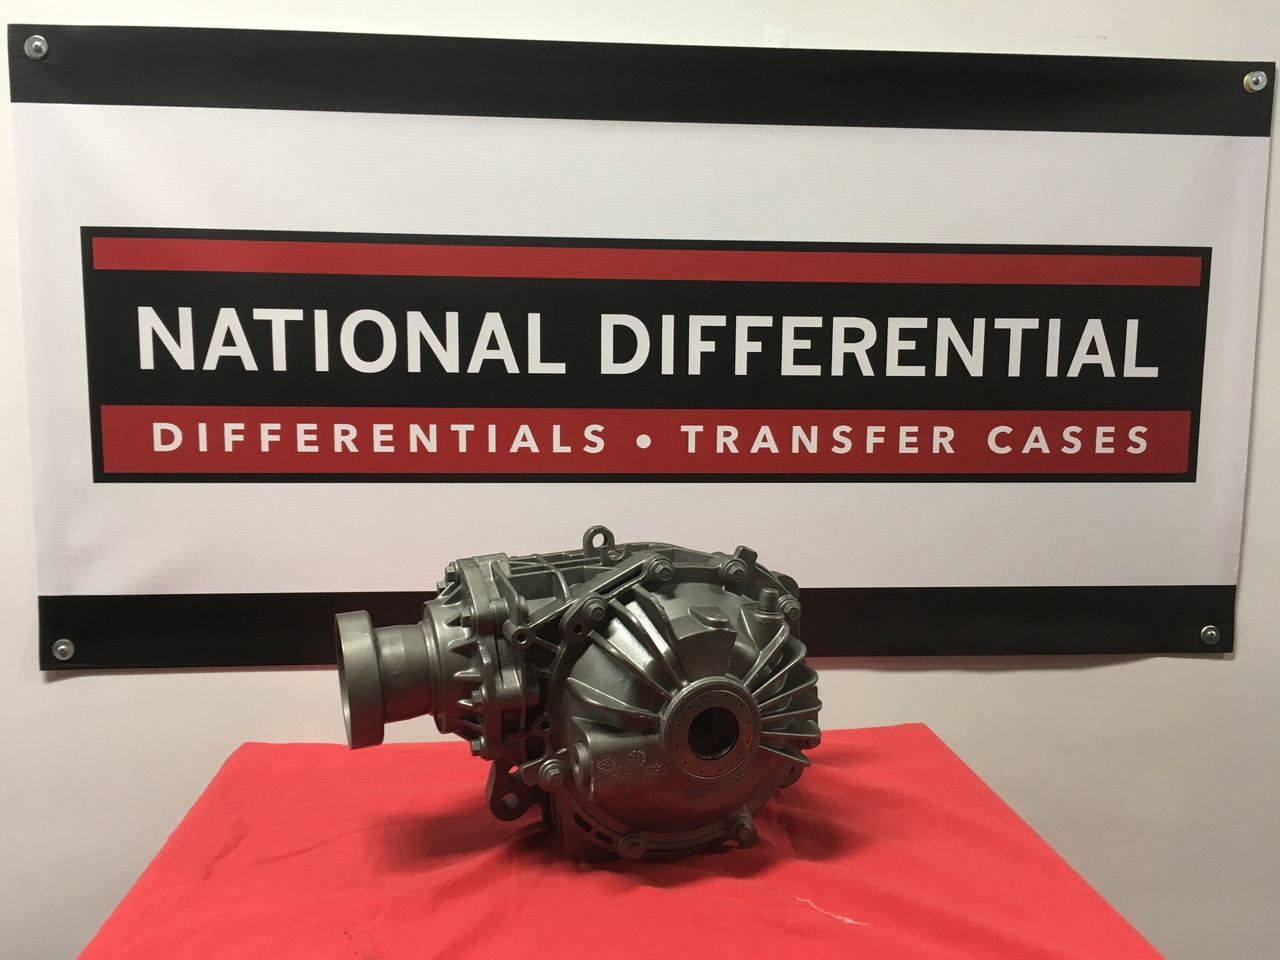 Front Differential for All-Wheel Drive Cadillac SRX SUVs 2008, 2009, 2010, 2011, 2012, 2013, 2014